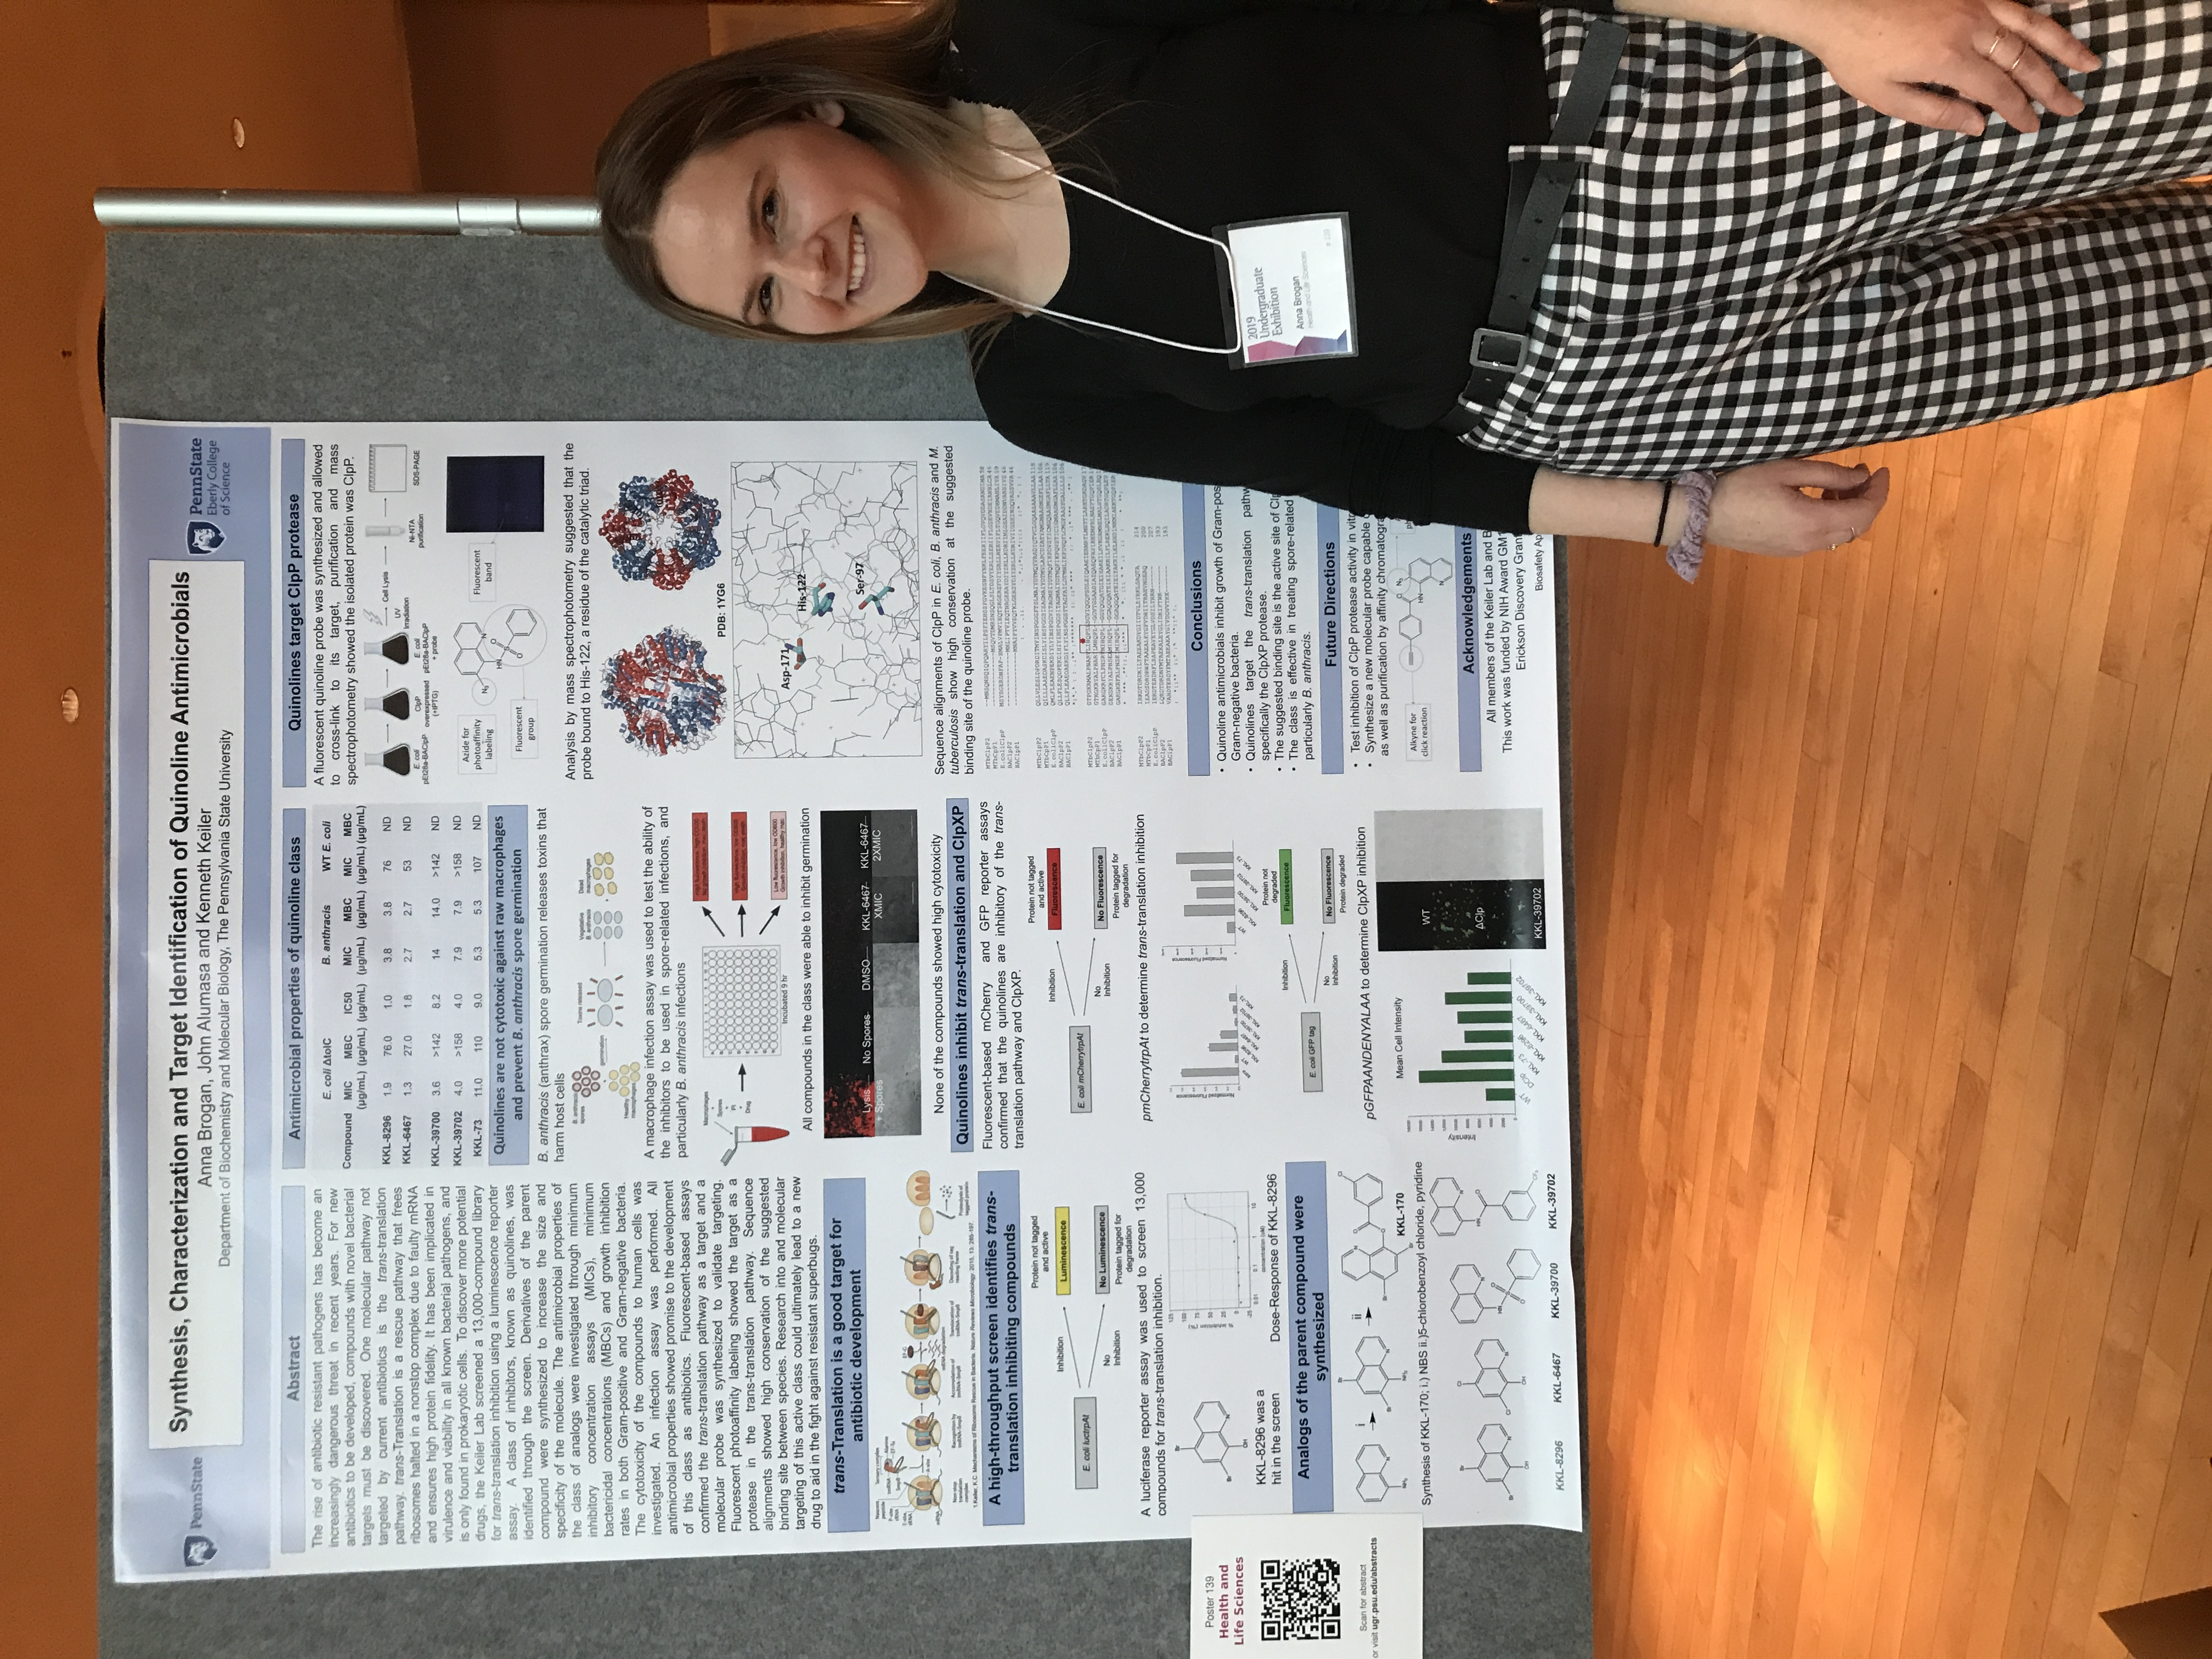 Image of Anna Brogan presenting her research at the Undergraduate Research Exhibition at Penn State